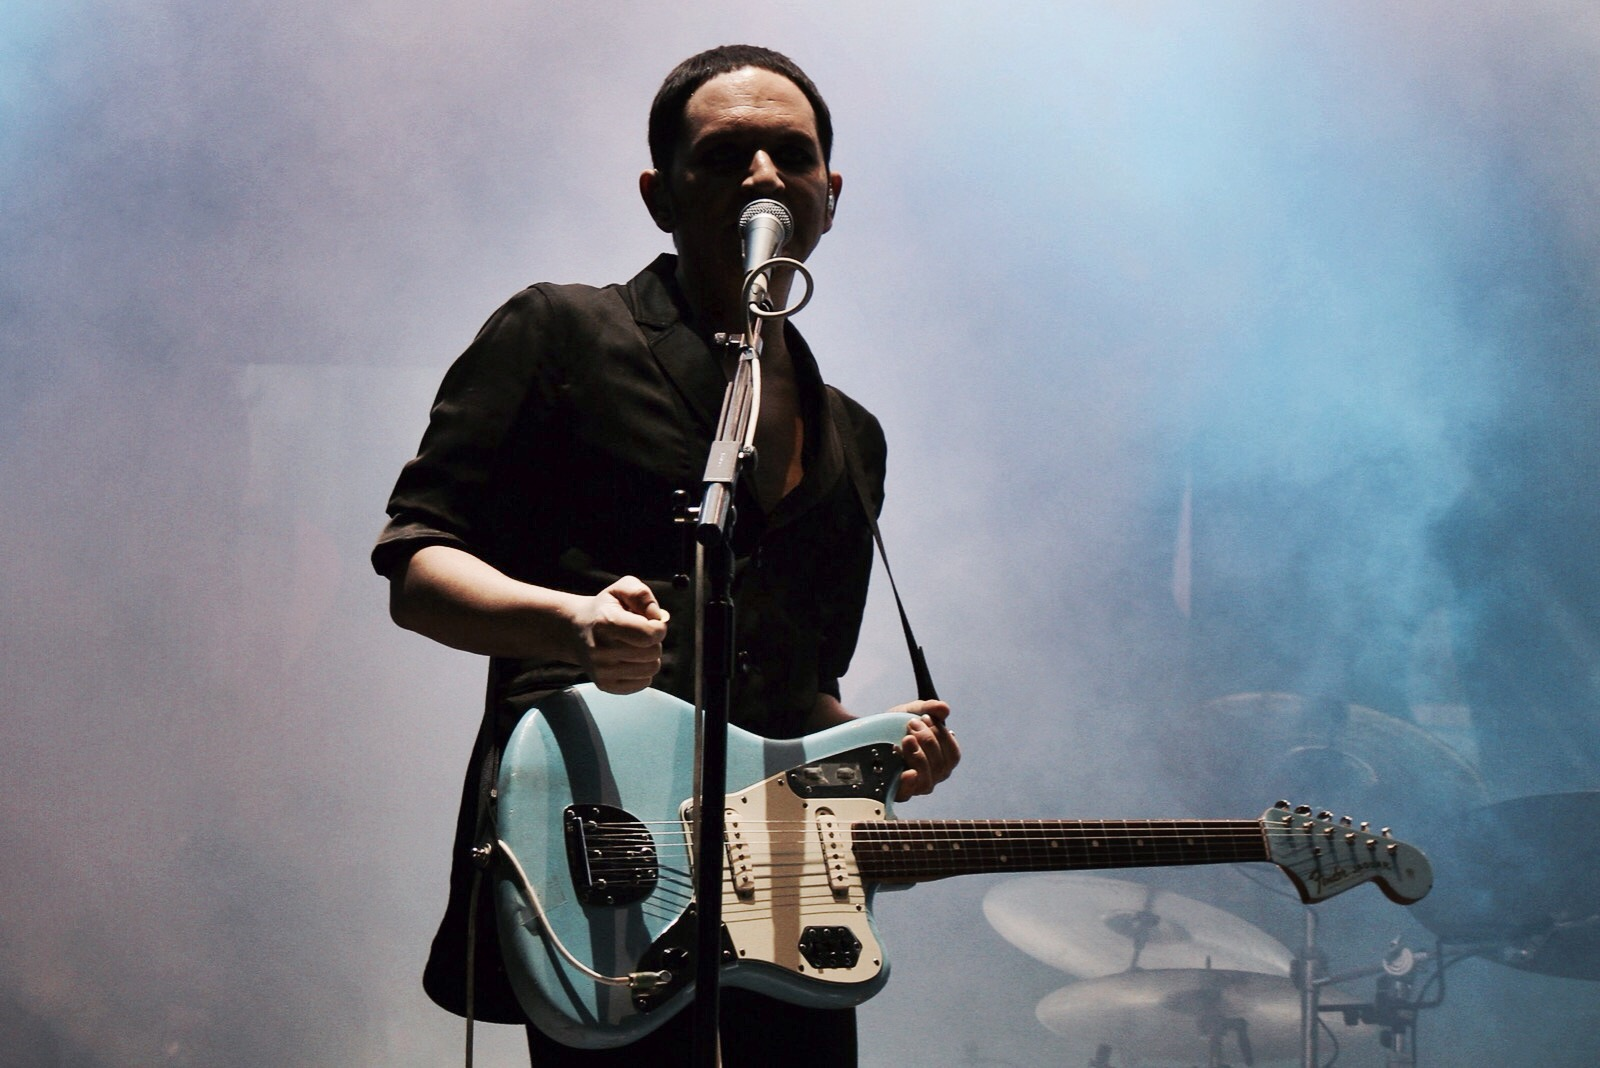 04-Placebo-fm4-frequency-festival-2017-thexed-xedblog